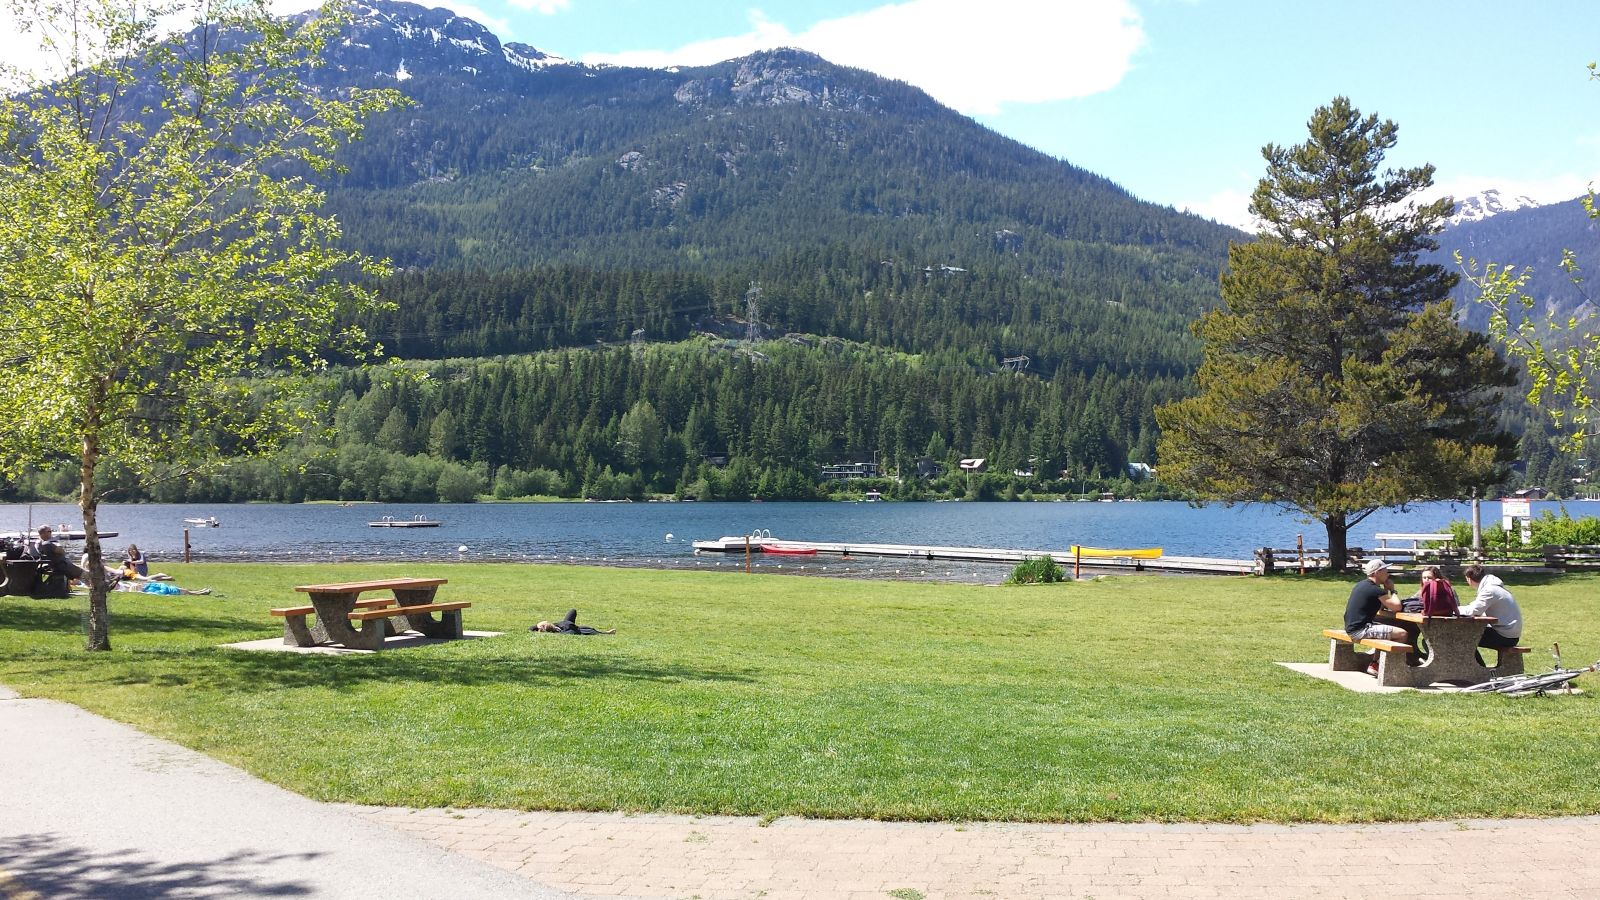 Picnic tables at Alta Lake in Whistler